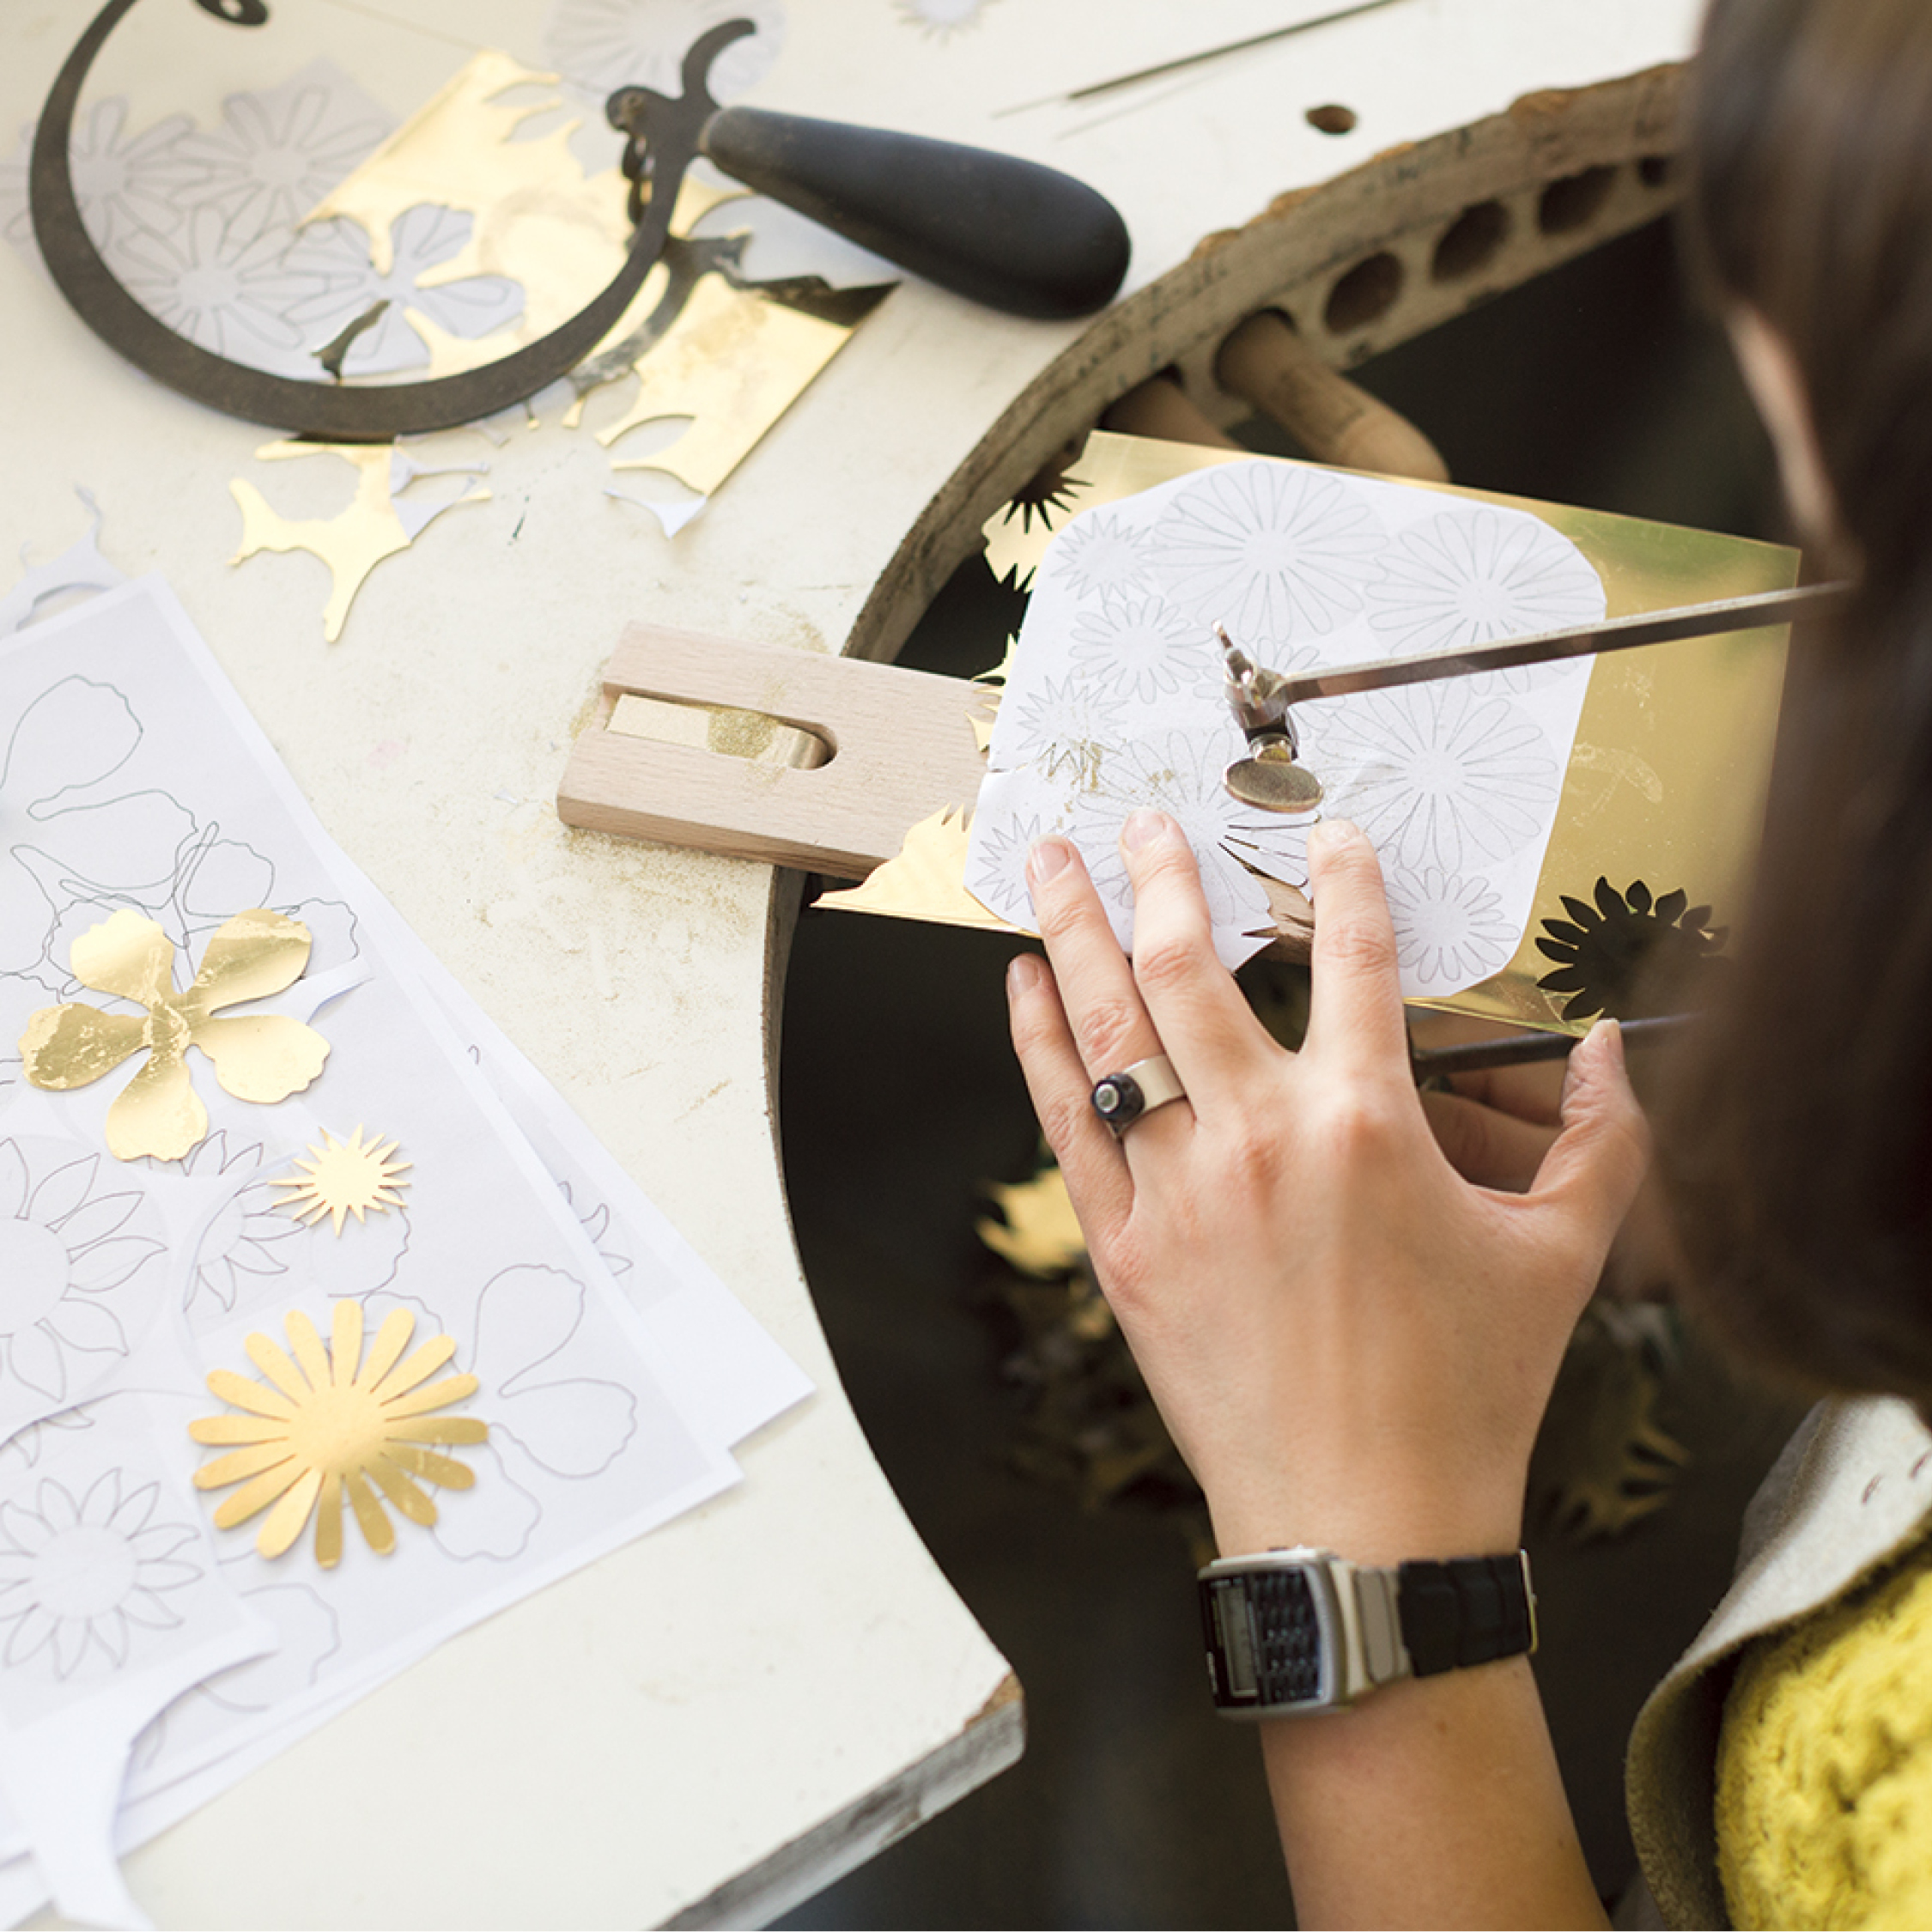 Saw piercing flower templates for the Martin Place permanent memorial.Photo by Bri Hammond